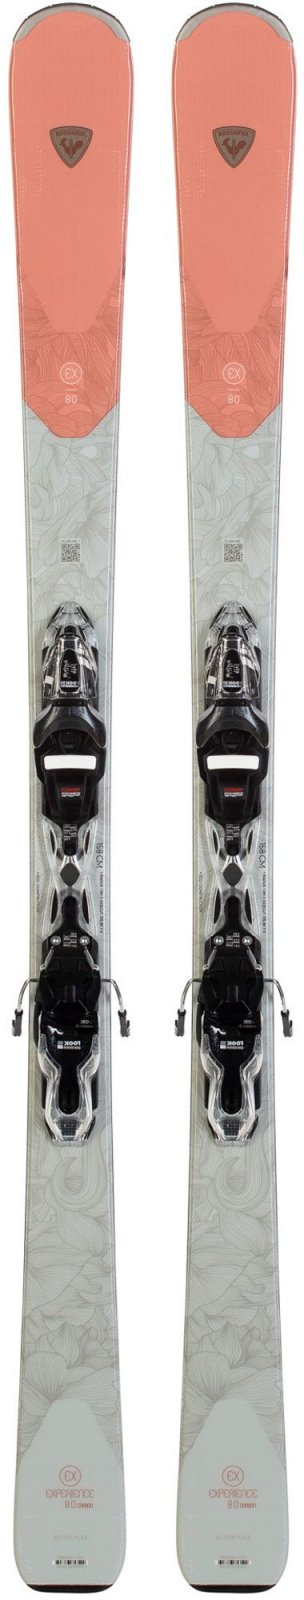 Rossignol Experince W 80 Carbon with Express W 11 GW Bindings